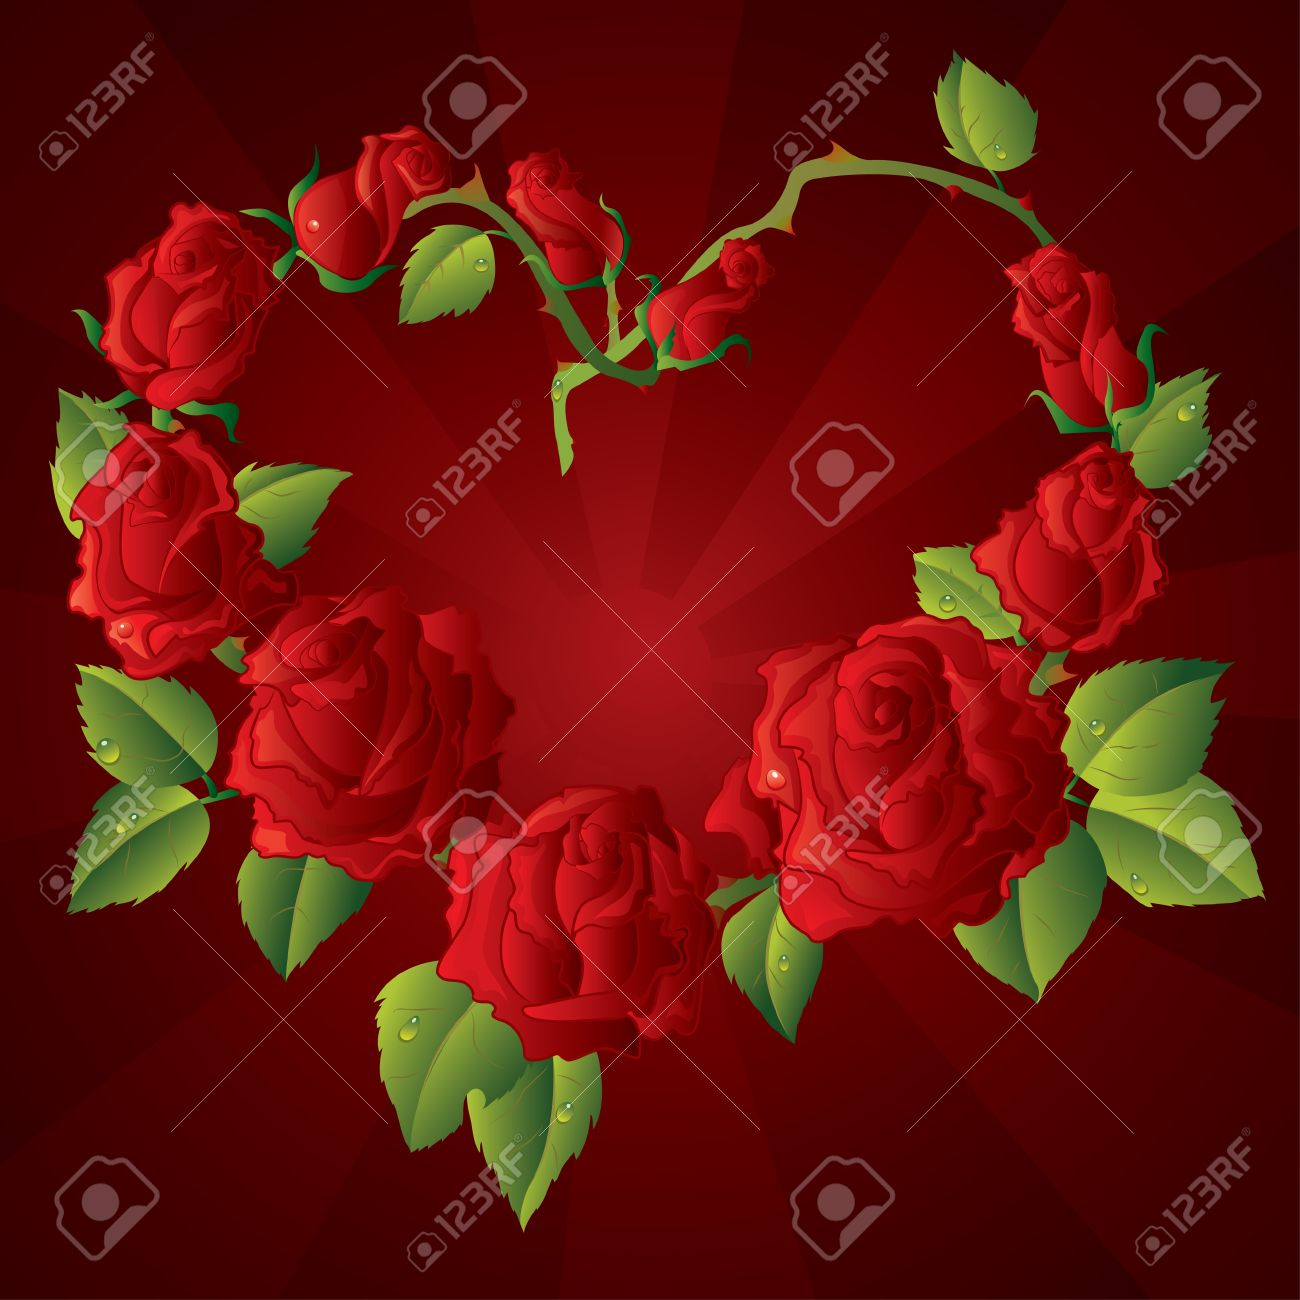 Red Rose Love Heart